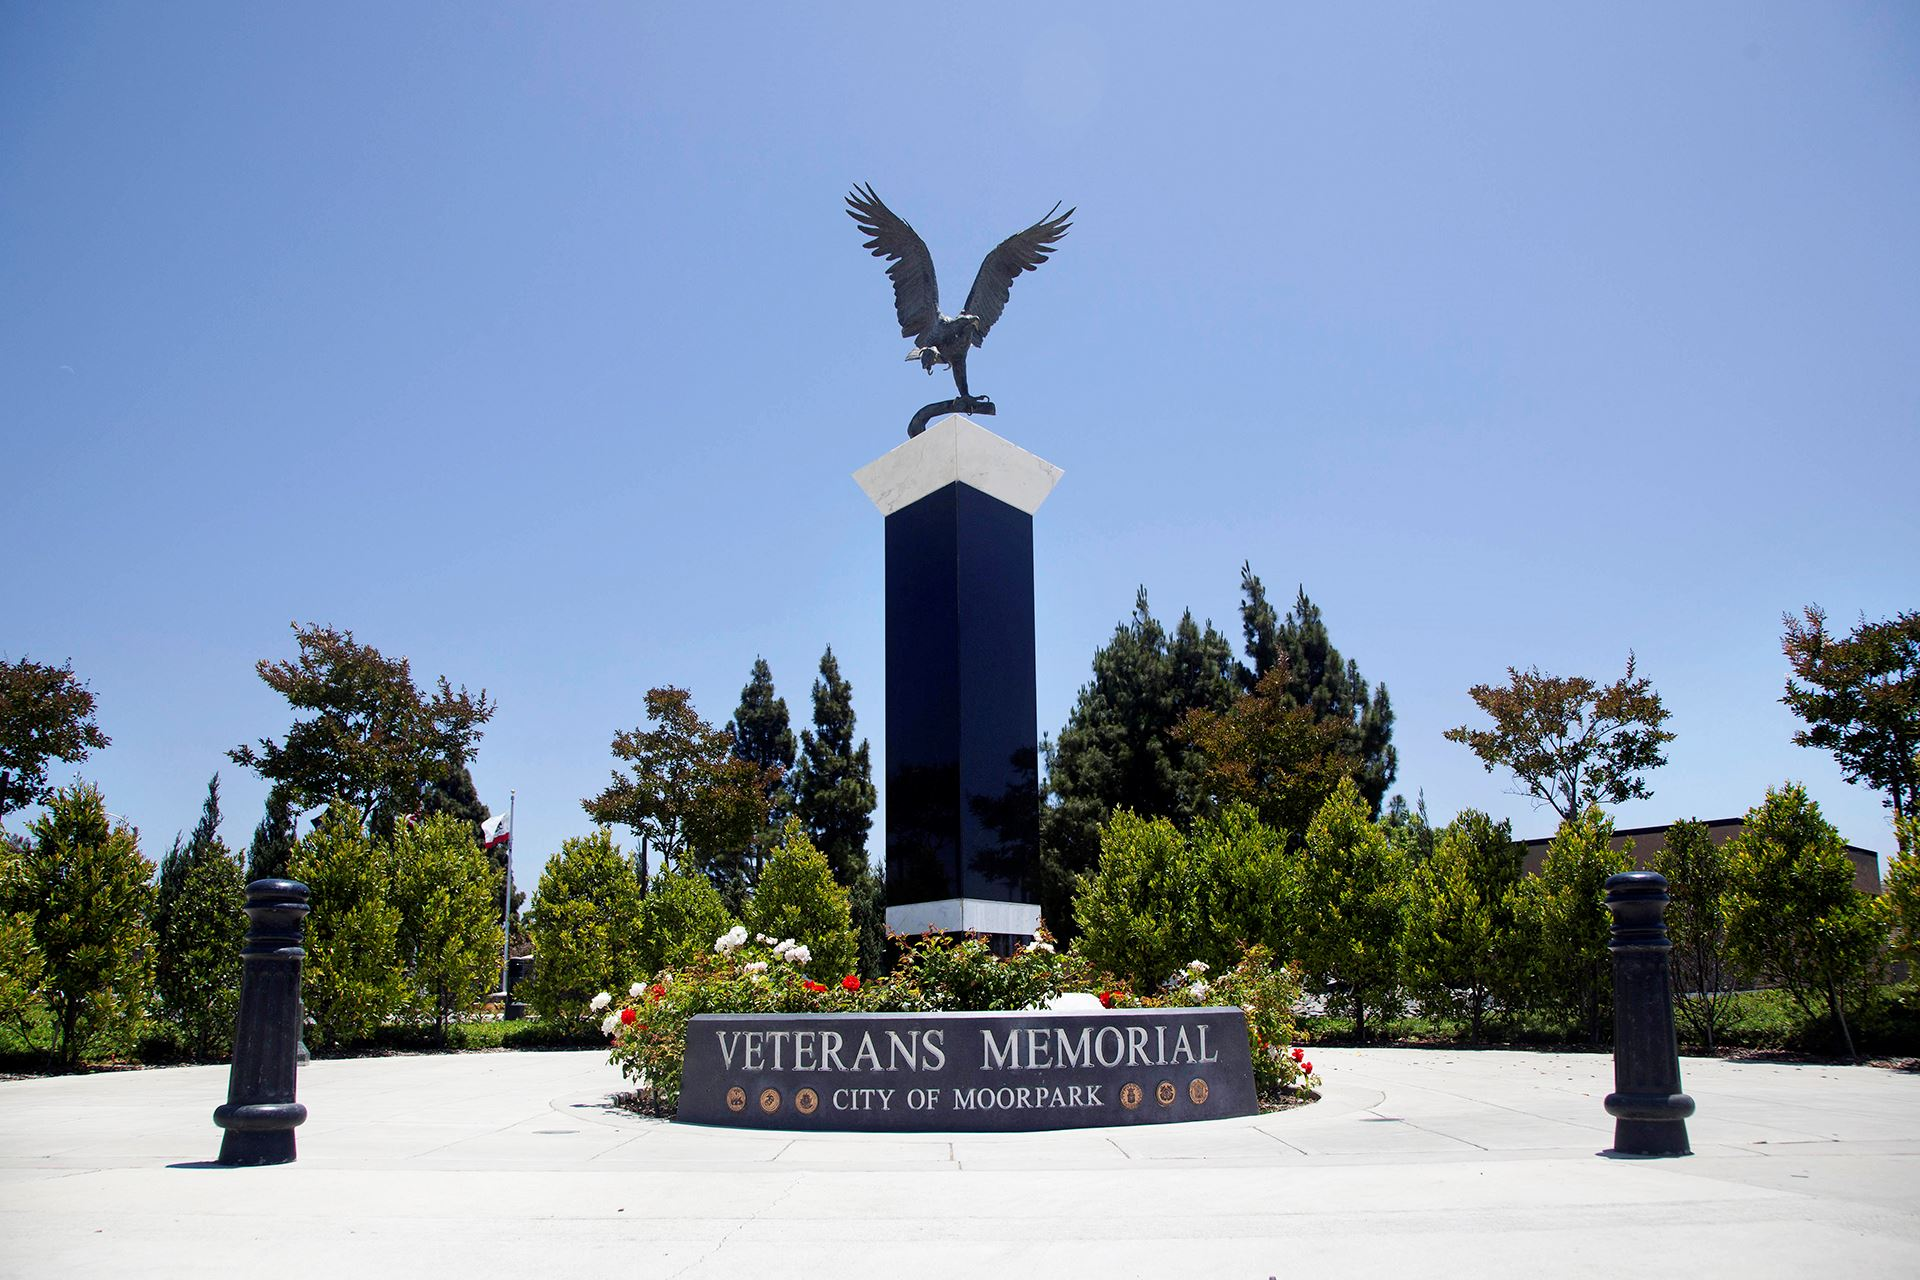 Moorpark Veterans Memorial